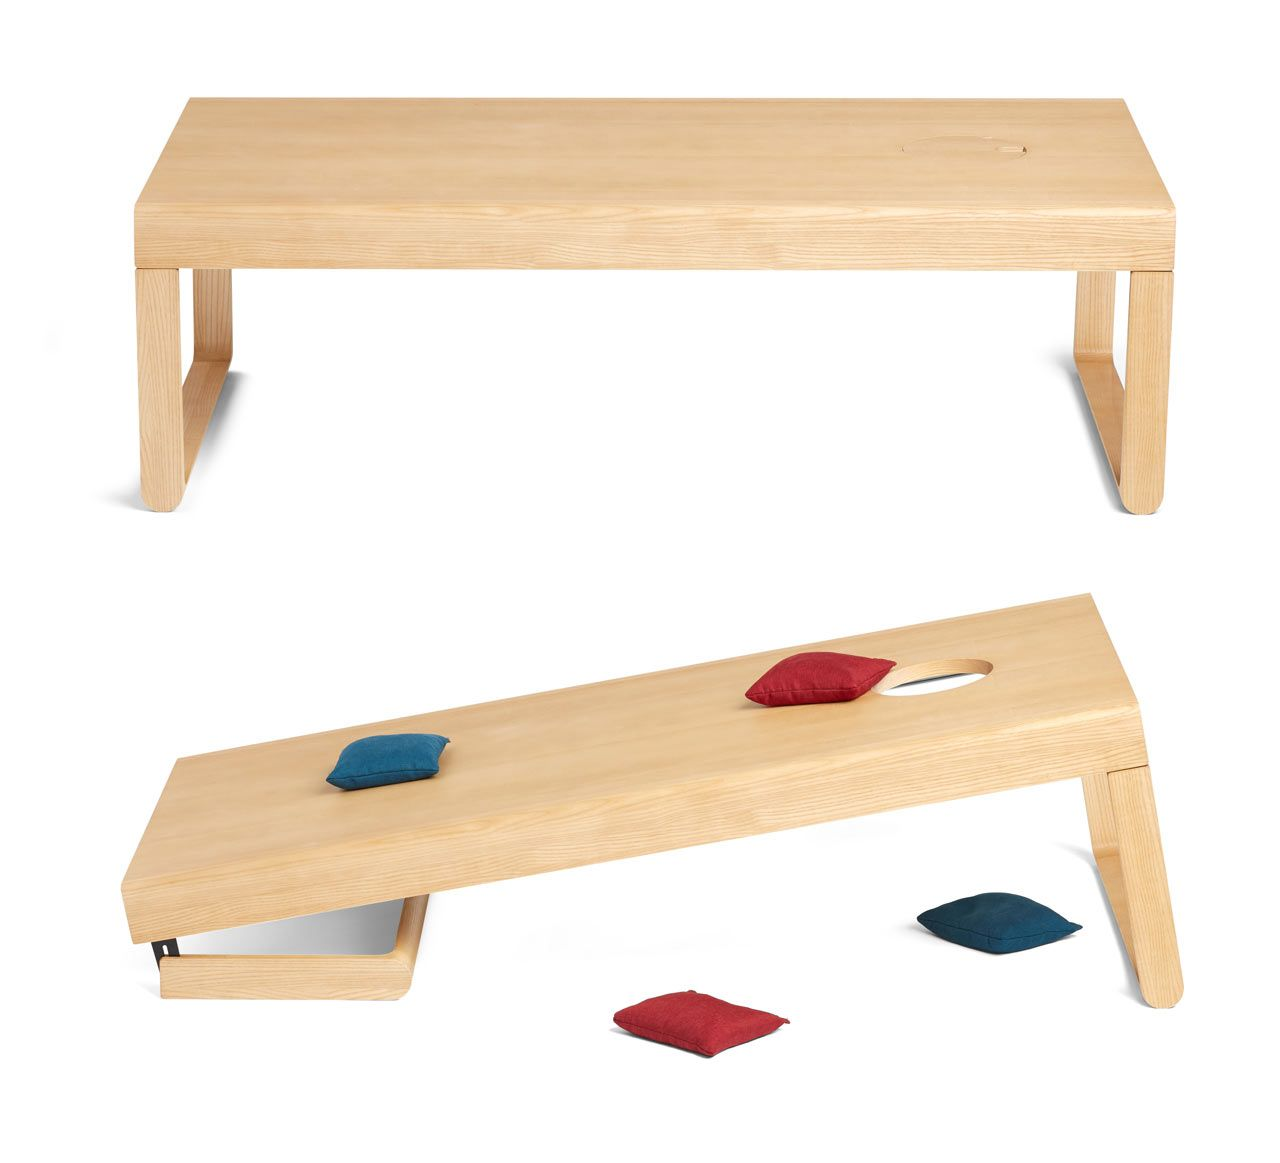 Poppin S Take Aim Coffee Table Easily Converts For A Game Of